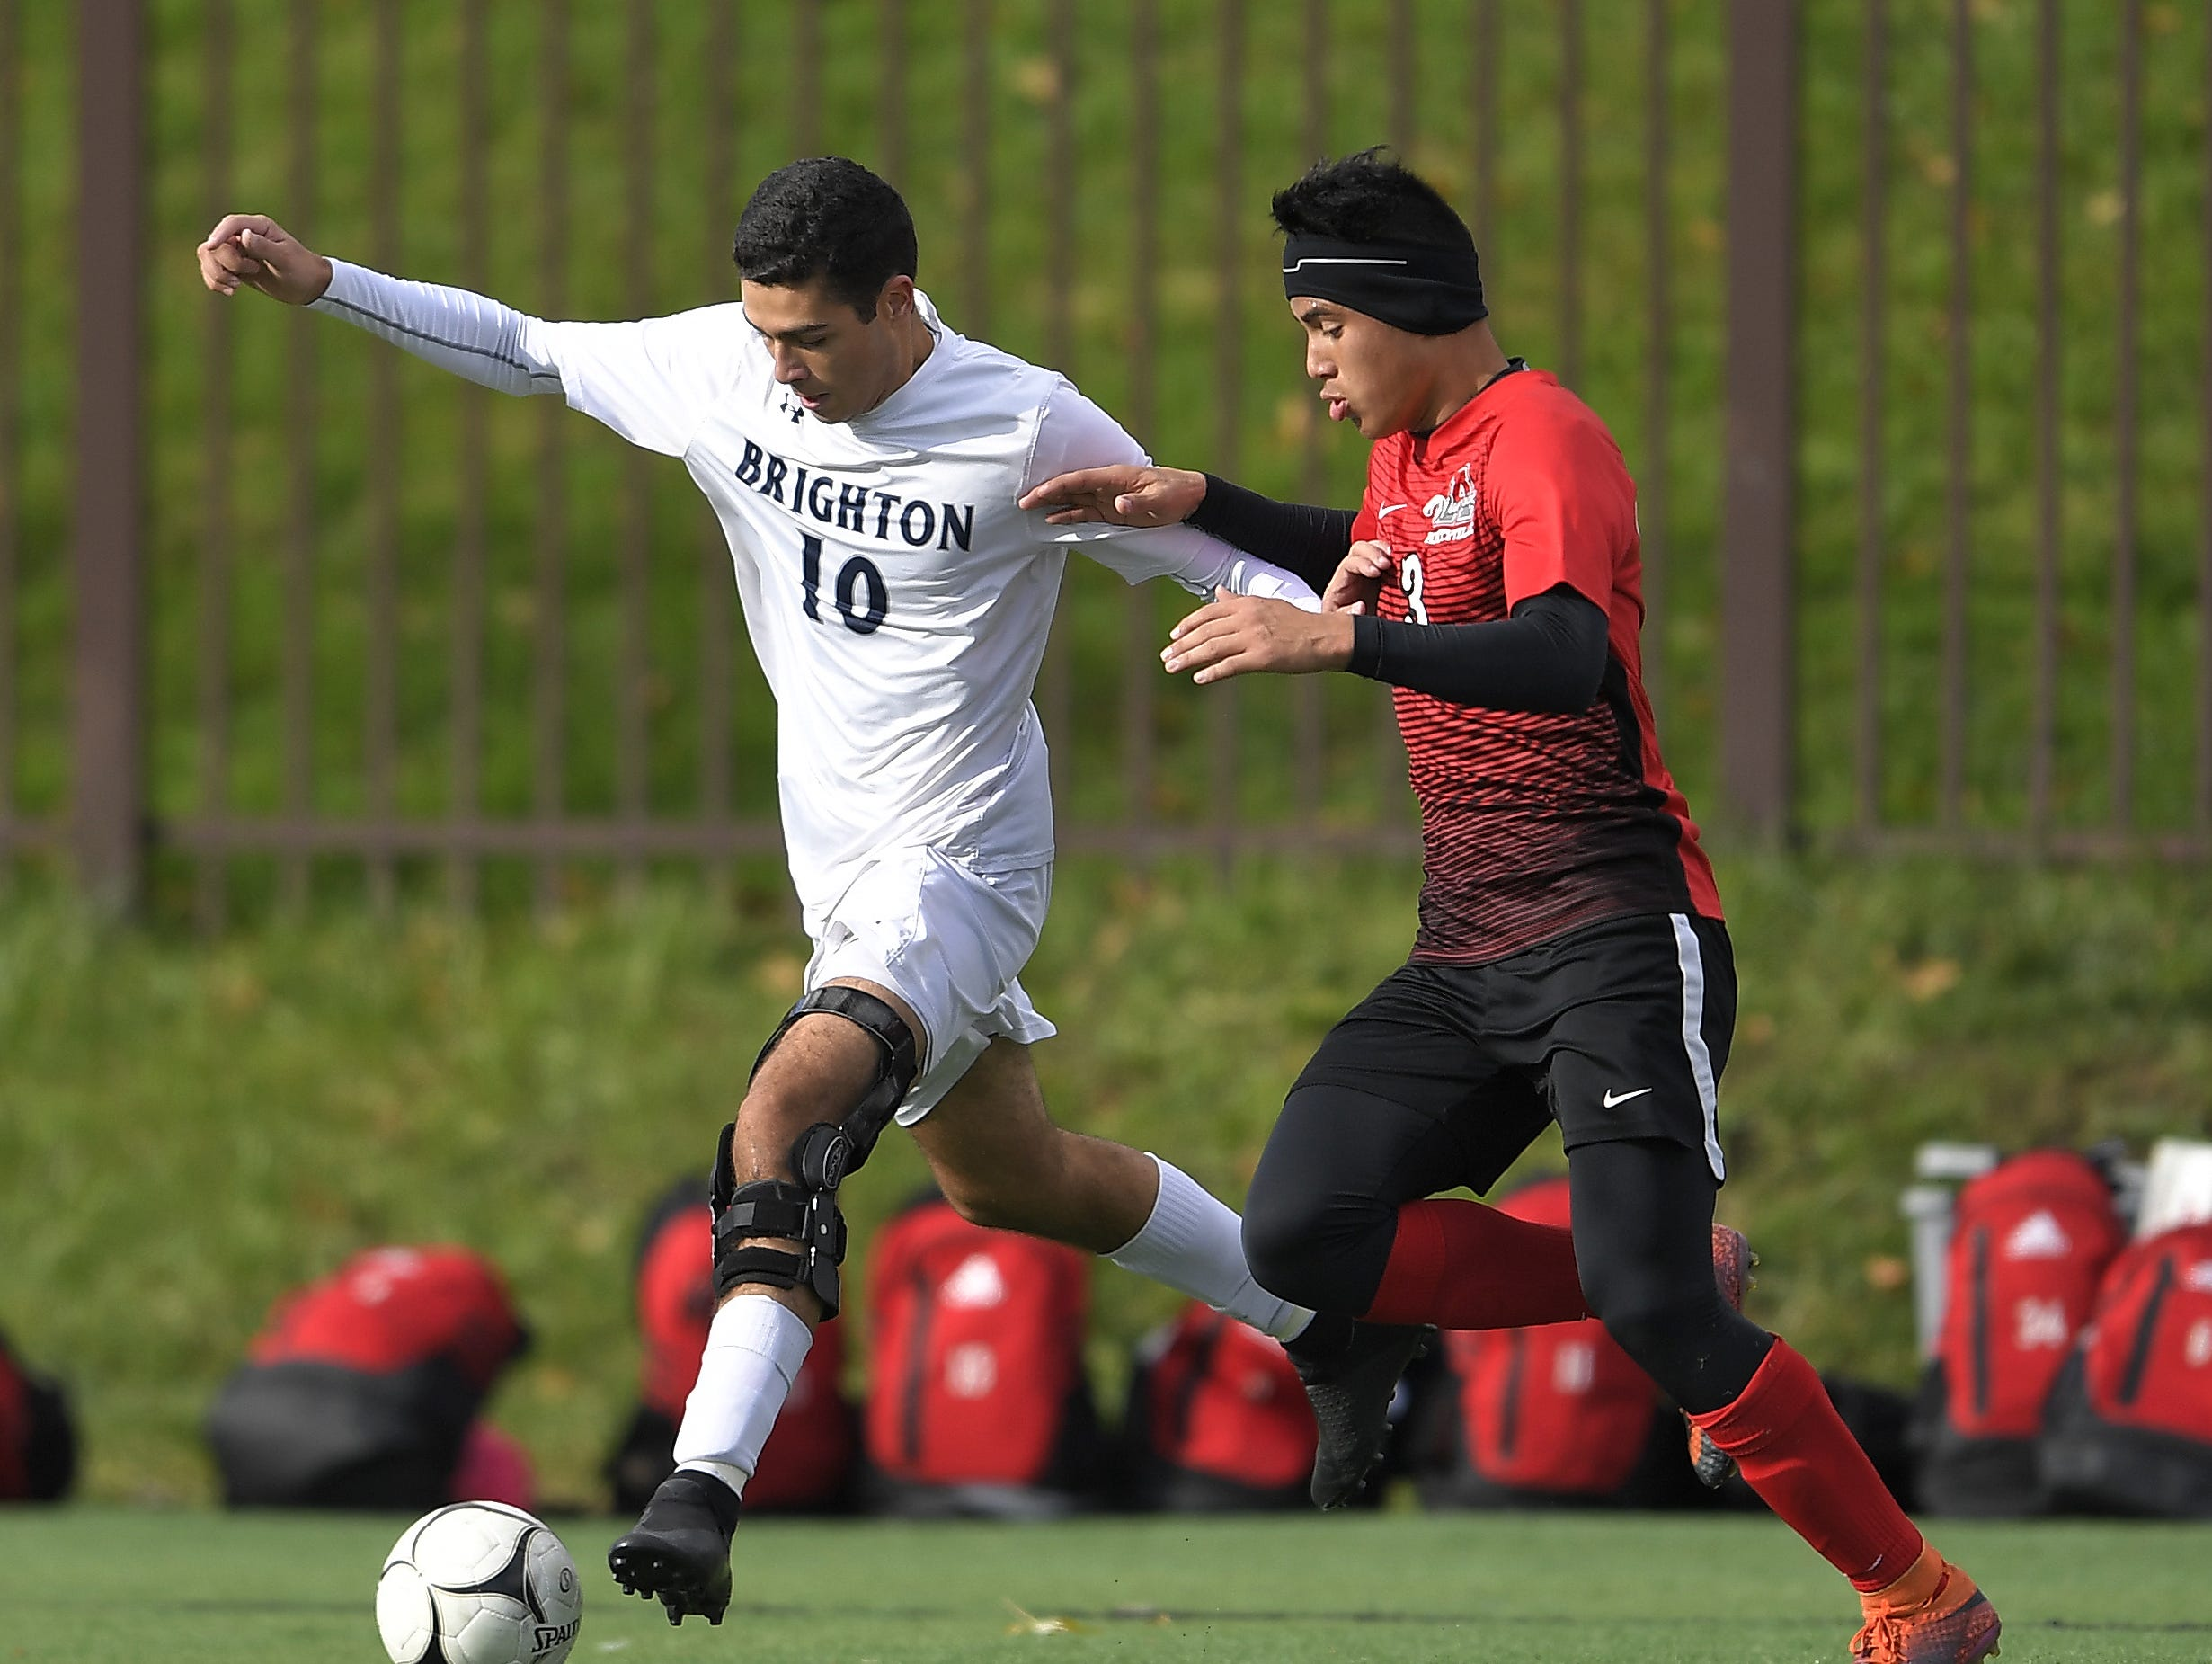 Brighton's Caio De Medeiros, left, is defended by Amityville's Angel Zavala during a Class A semifinal at the NYSPHSAA Boys Soccer Championships in Newburgh, N.Y., Saturday, Nov. 10, 2018.